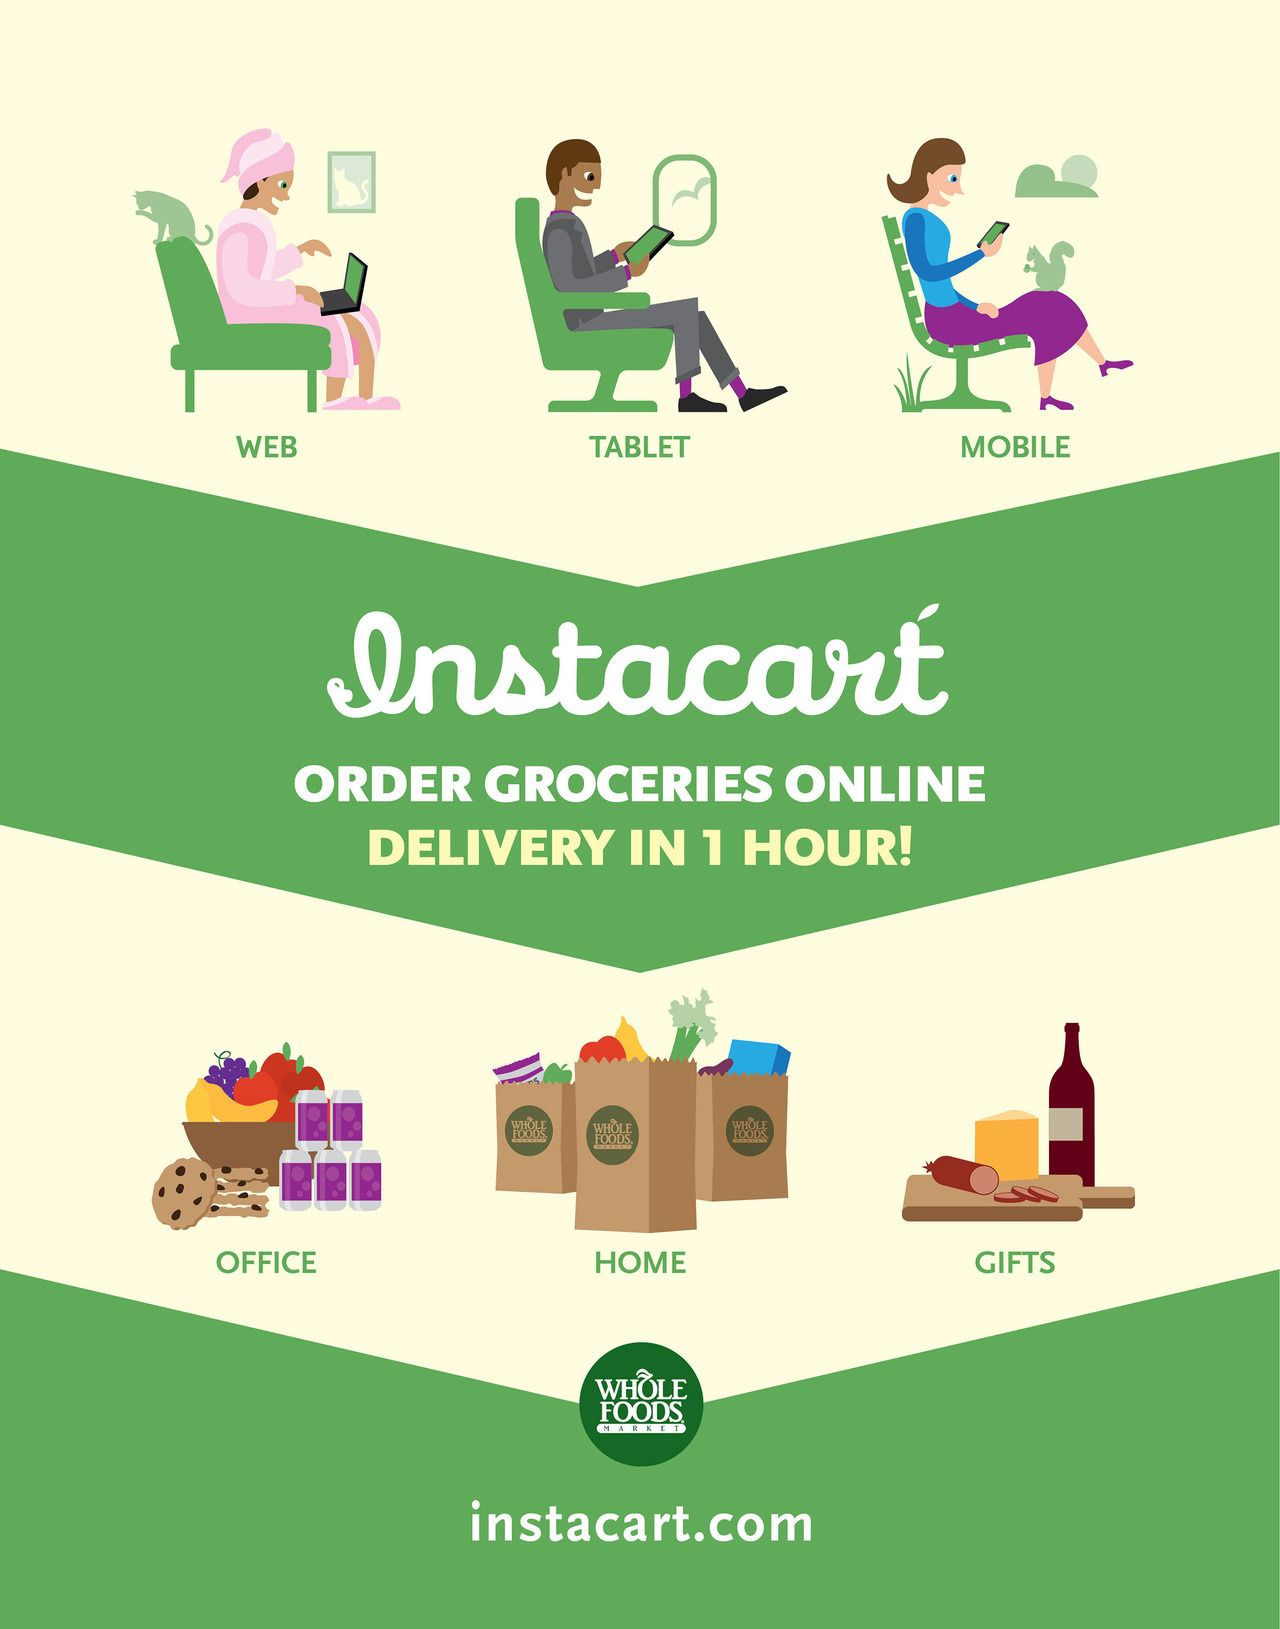 Pin by leeyatwahhh on Giveaway & Contest Instacart